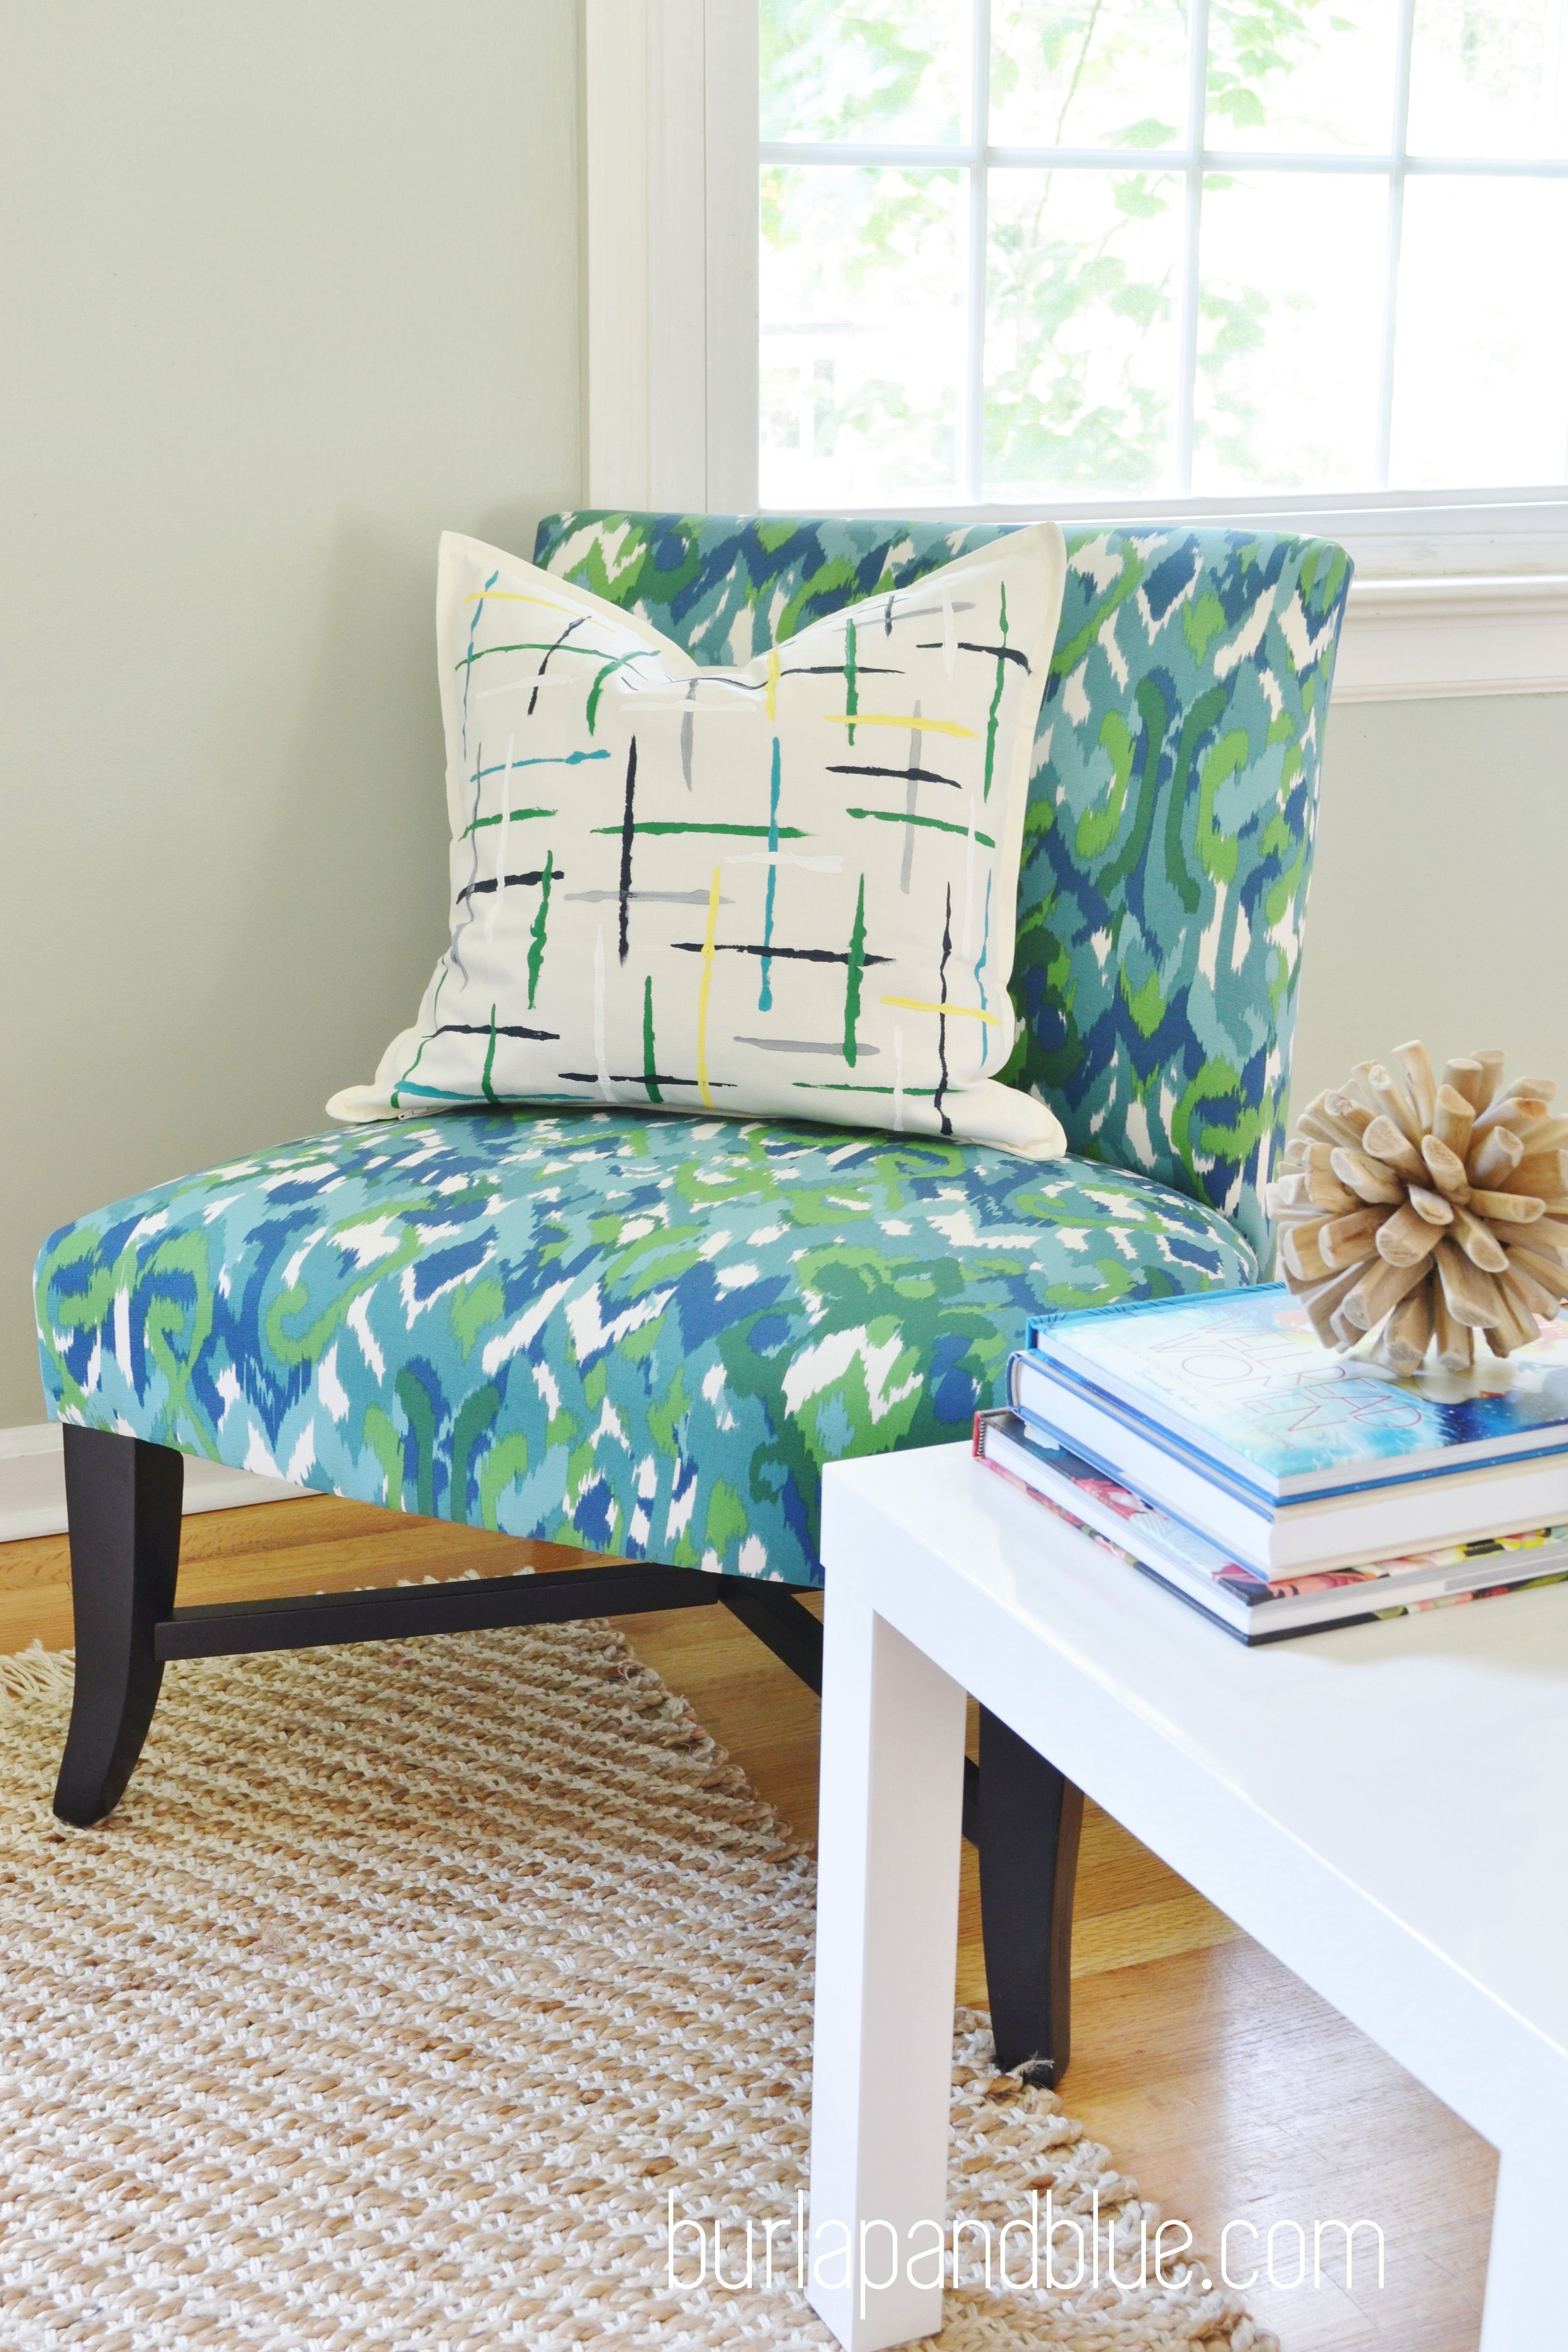 Diy brushstrokes painted pillow a tutorial pillows and tutorials